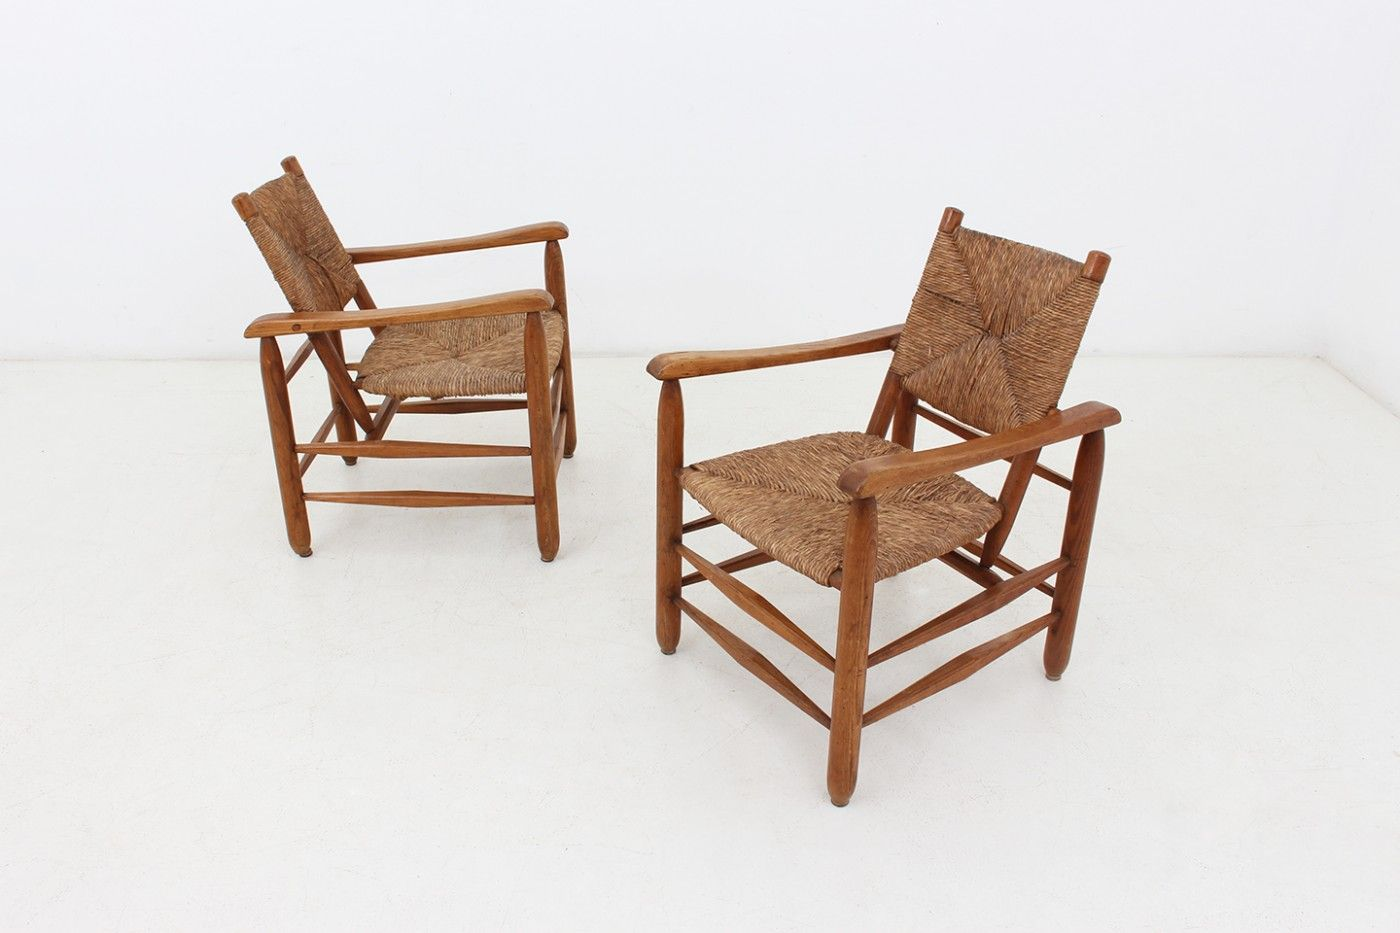 Peachy Pair Of Lounge Chairs Dimoregallery Furniture In 2019 Uwap Interior Chair Design Uwaporg